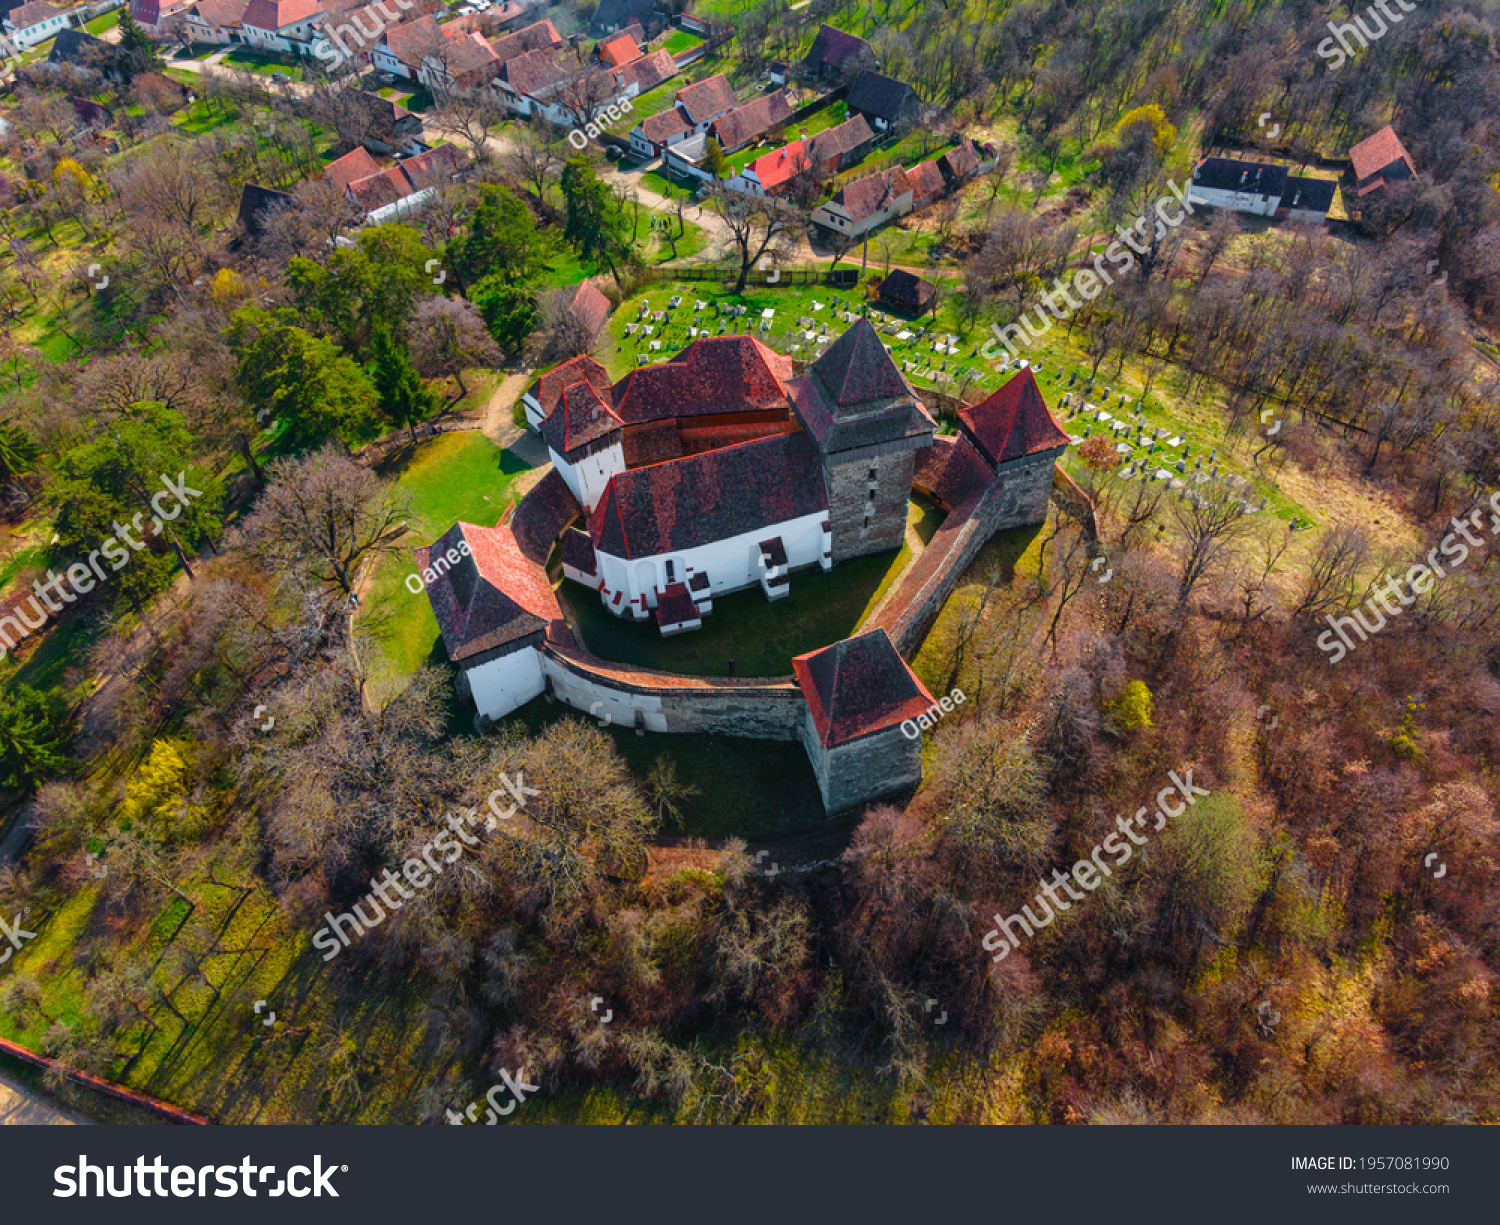 stock-photo-aerial-view-of-medieval-fort